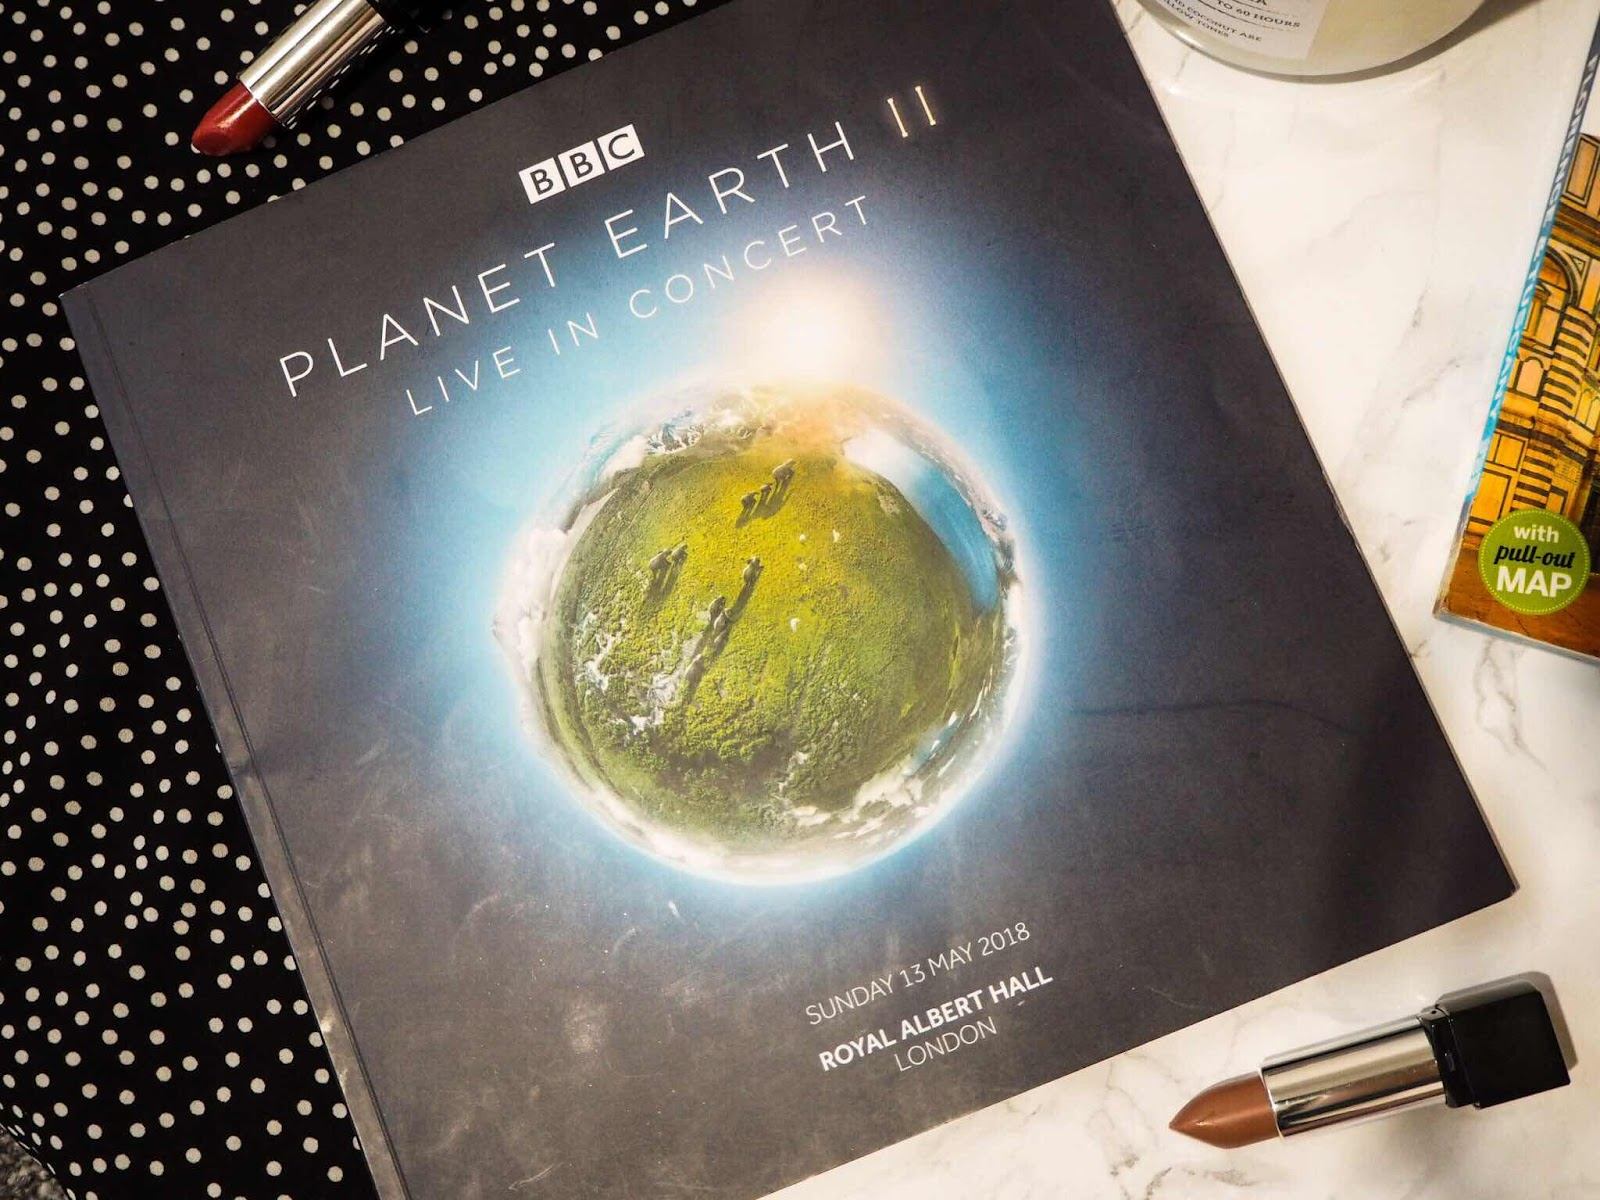 monthly-favourites-lifestyle-blog-london-planet-earth-ii-live-in-concert-royal-albert-hall-hans-zimmer-blue-planet